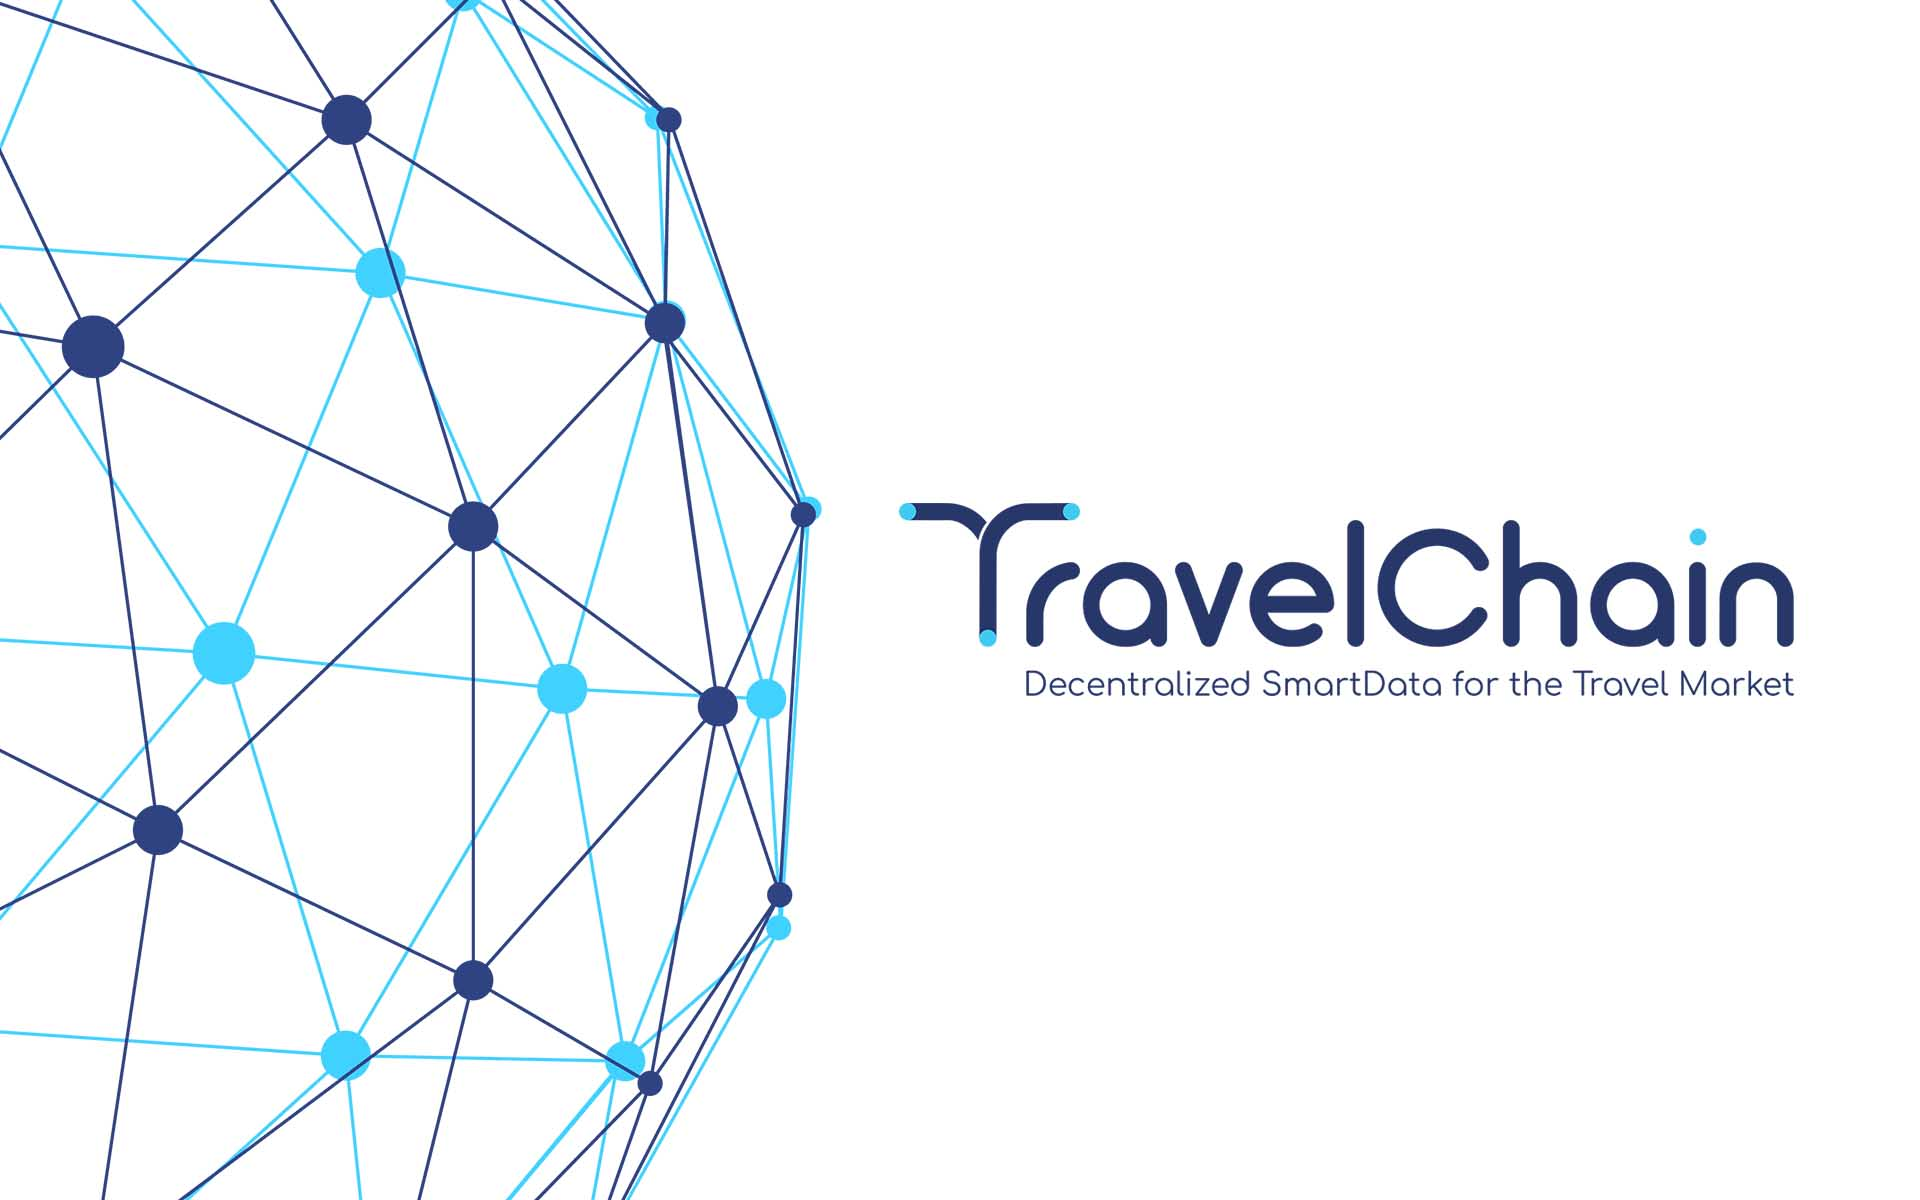 Here's Why TravelChain Is Getting So Much Attention Right Now